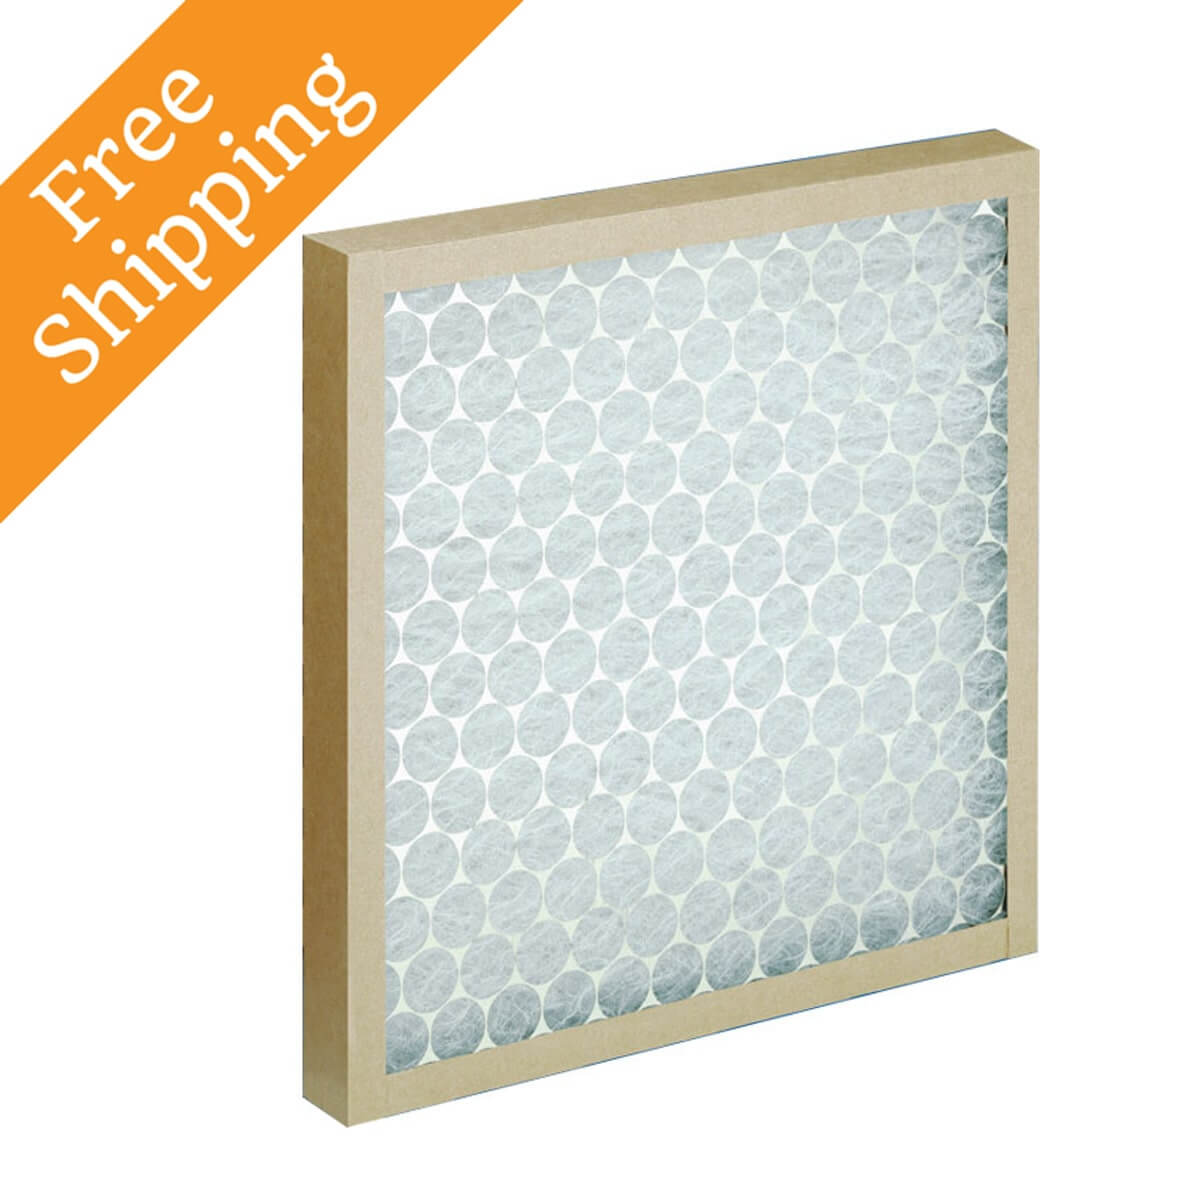 Glasfloss 10x30x1 Air Filter PTA Series